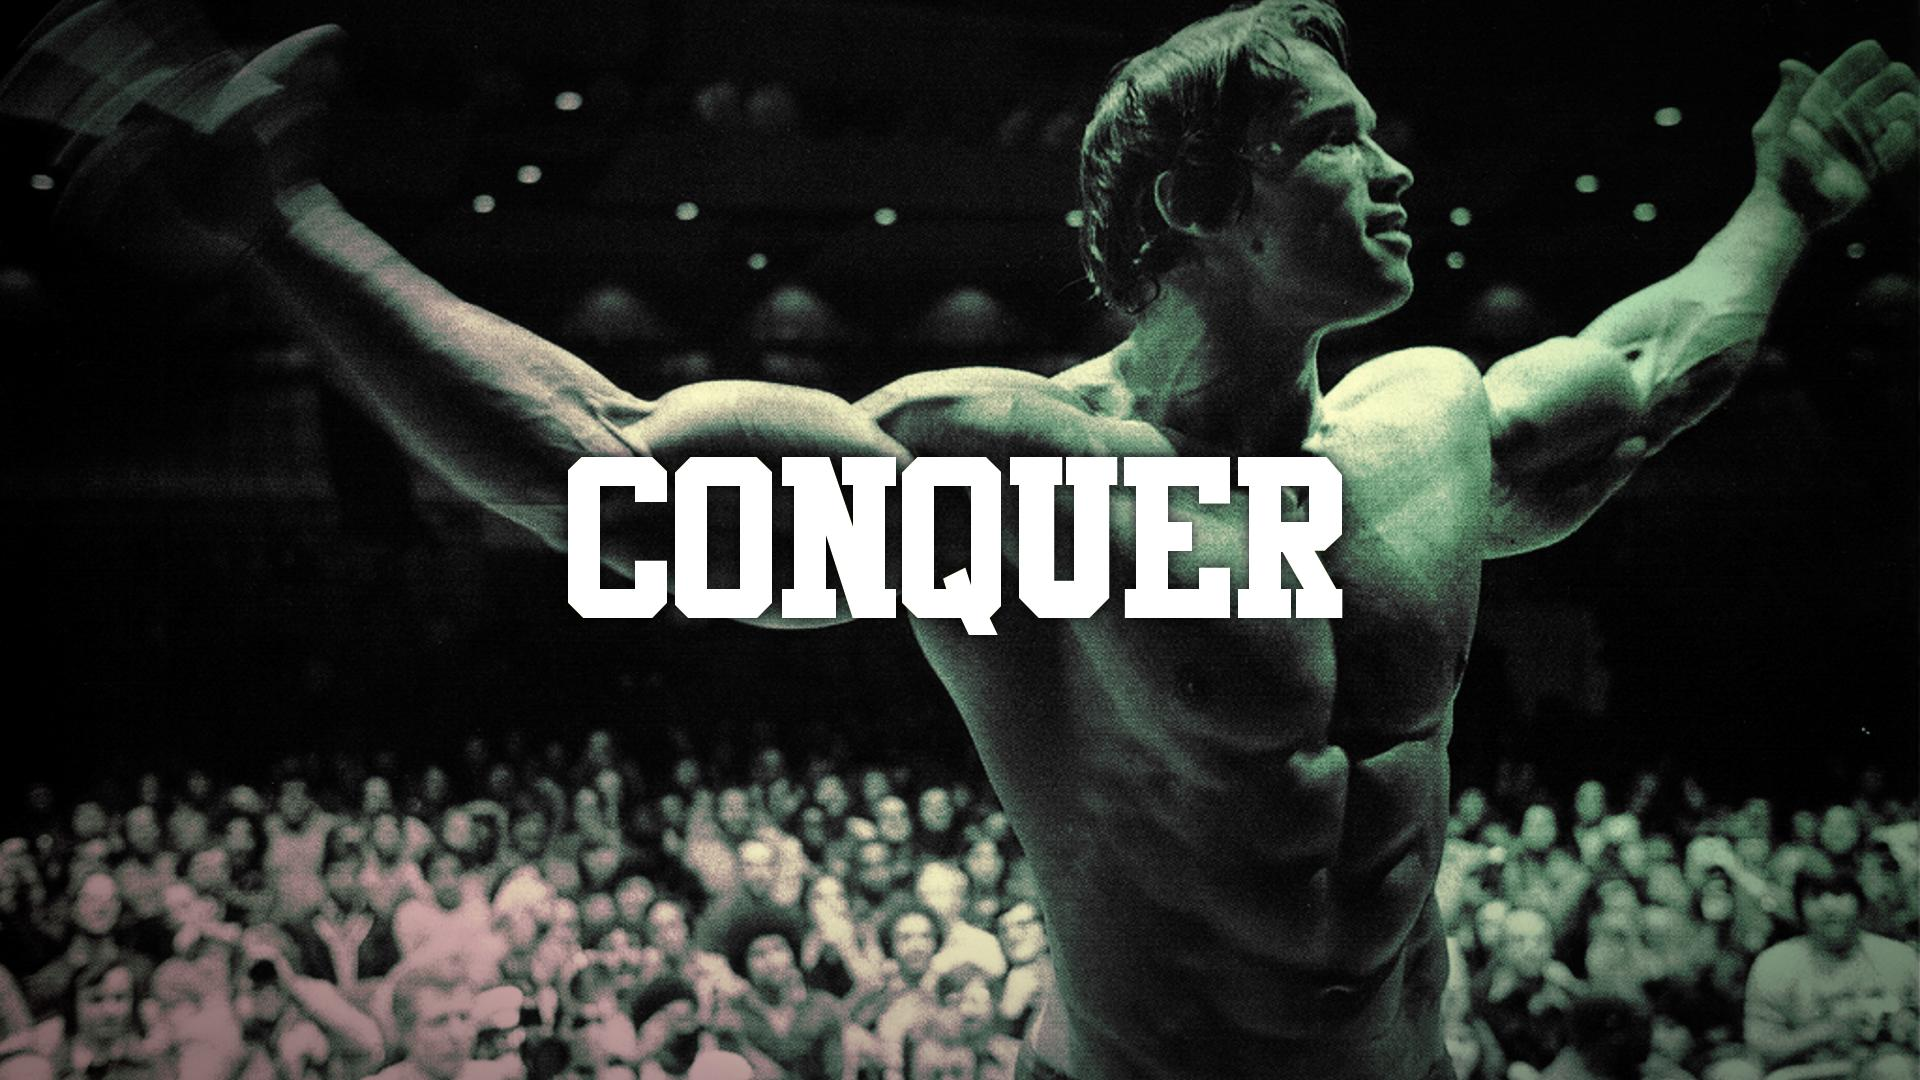 Arnold Schwarzenegger Conquer Muscle Bodybuilding wallpaper backgroundArnold Schwarzenegger Bodybuilding Quotes Wallpaper